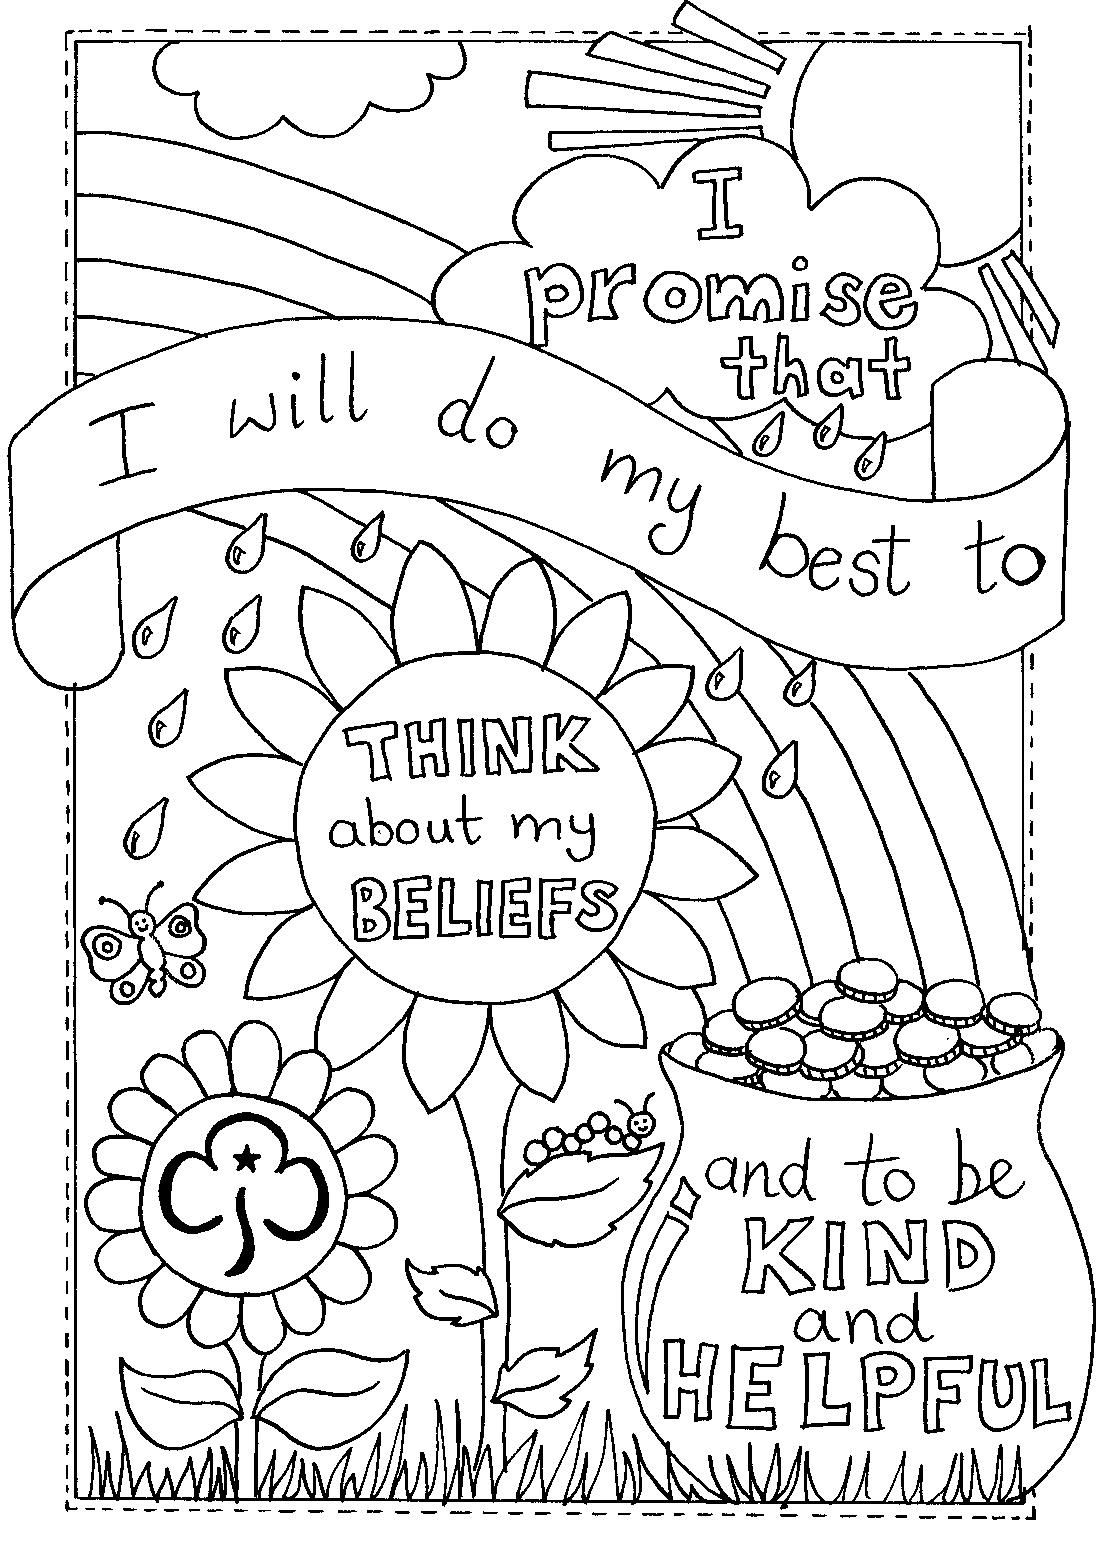 girl scout promise coloring page the 25 best ideas for girl scout coloring pages with scout girl promise page coloring